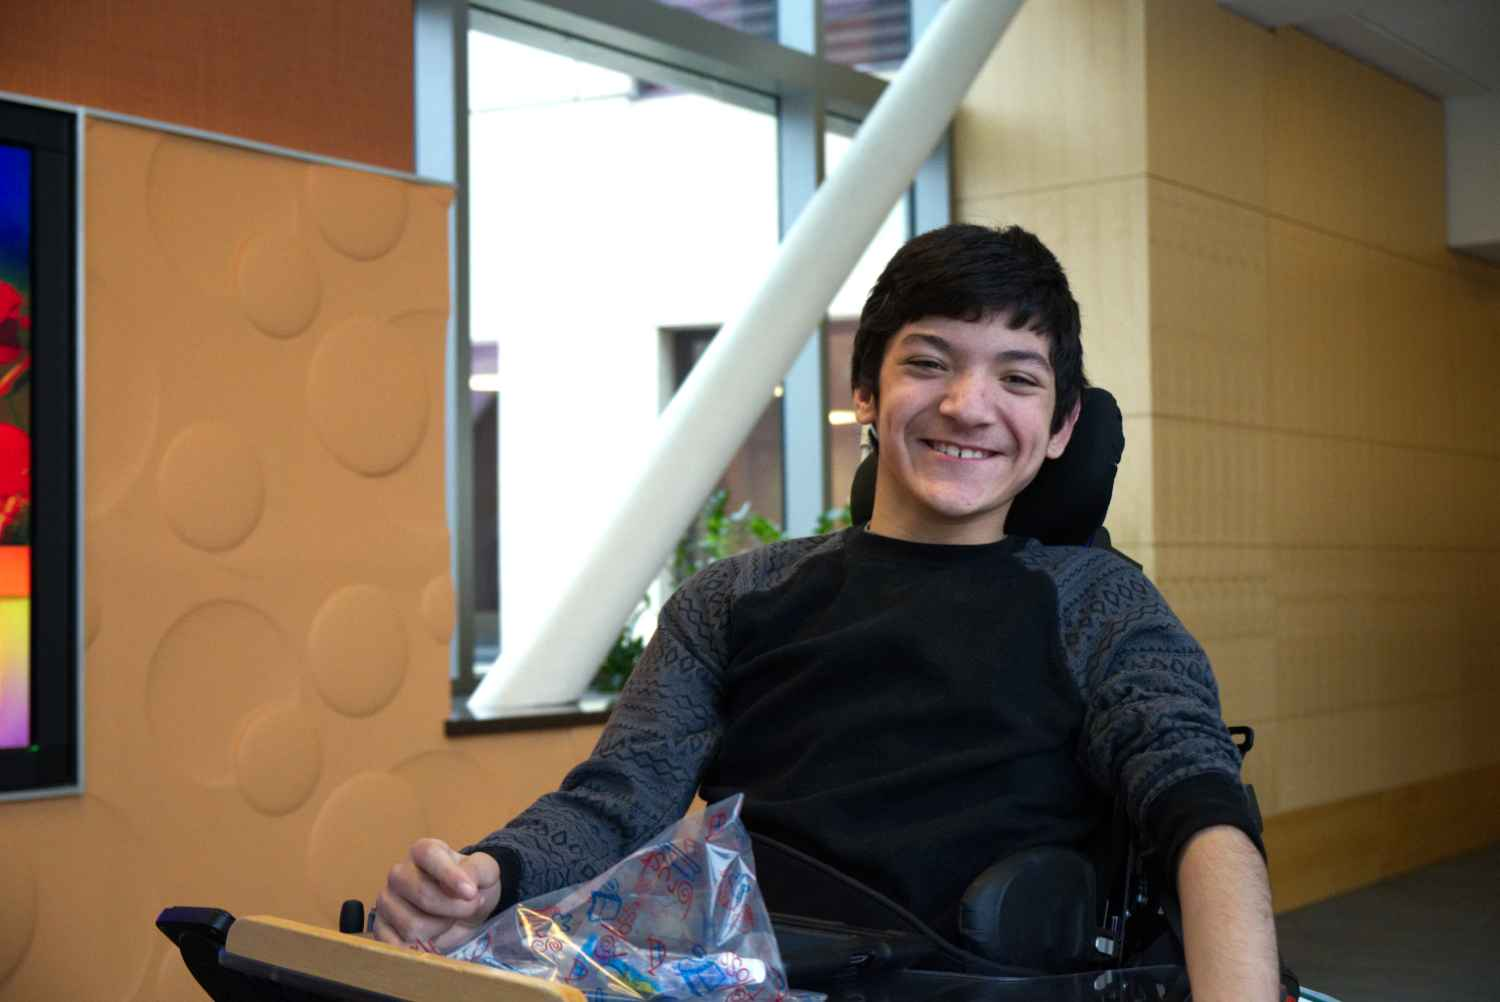 Louie Romero is all smiles at Gillette Children's